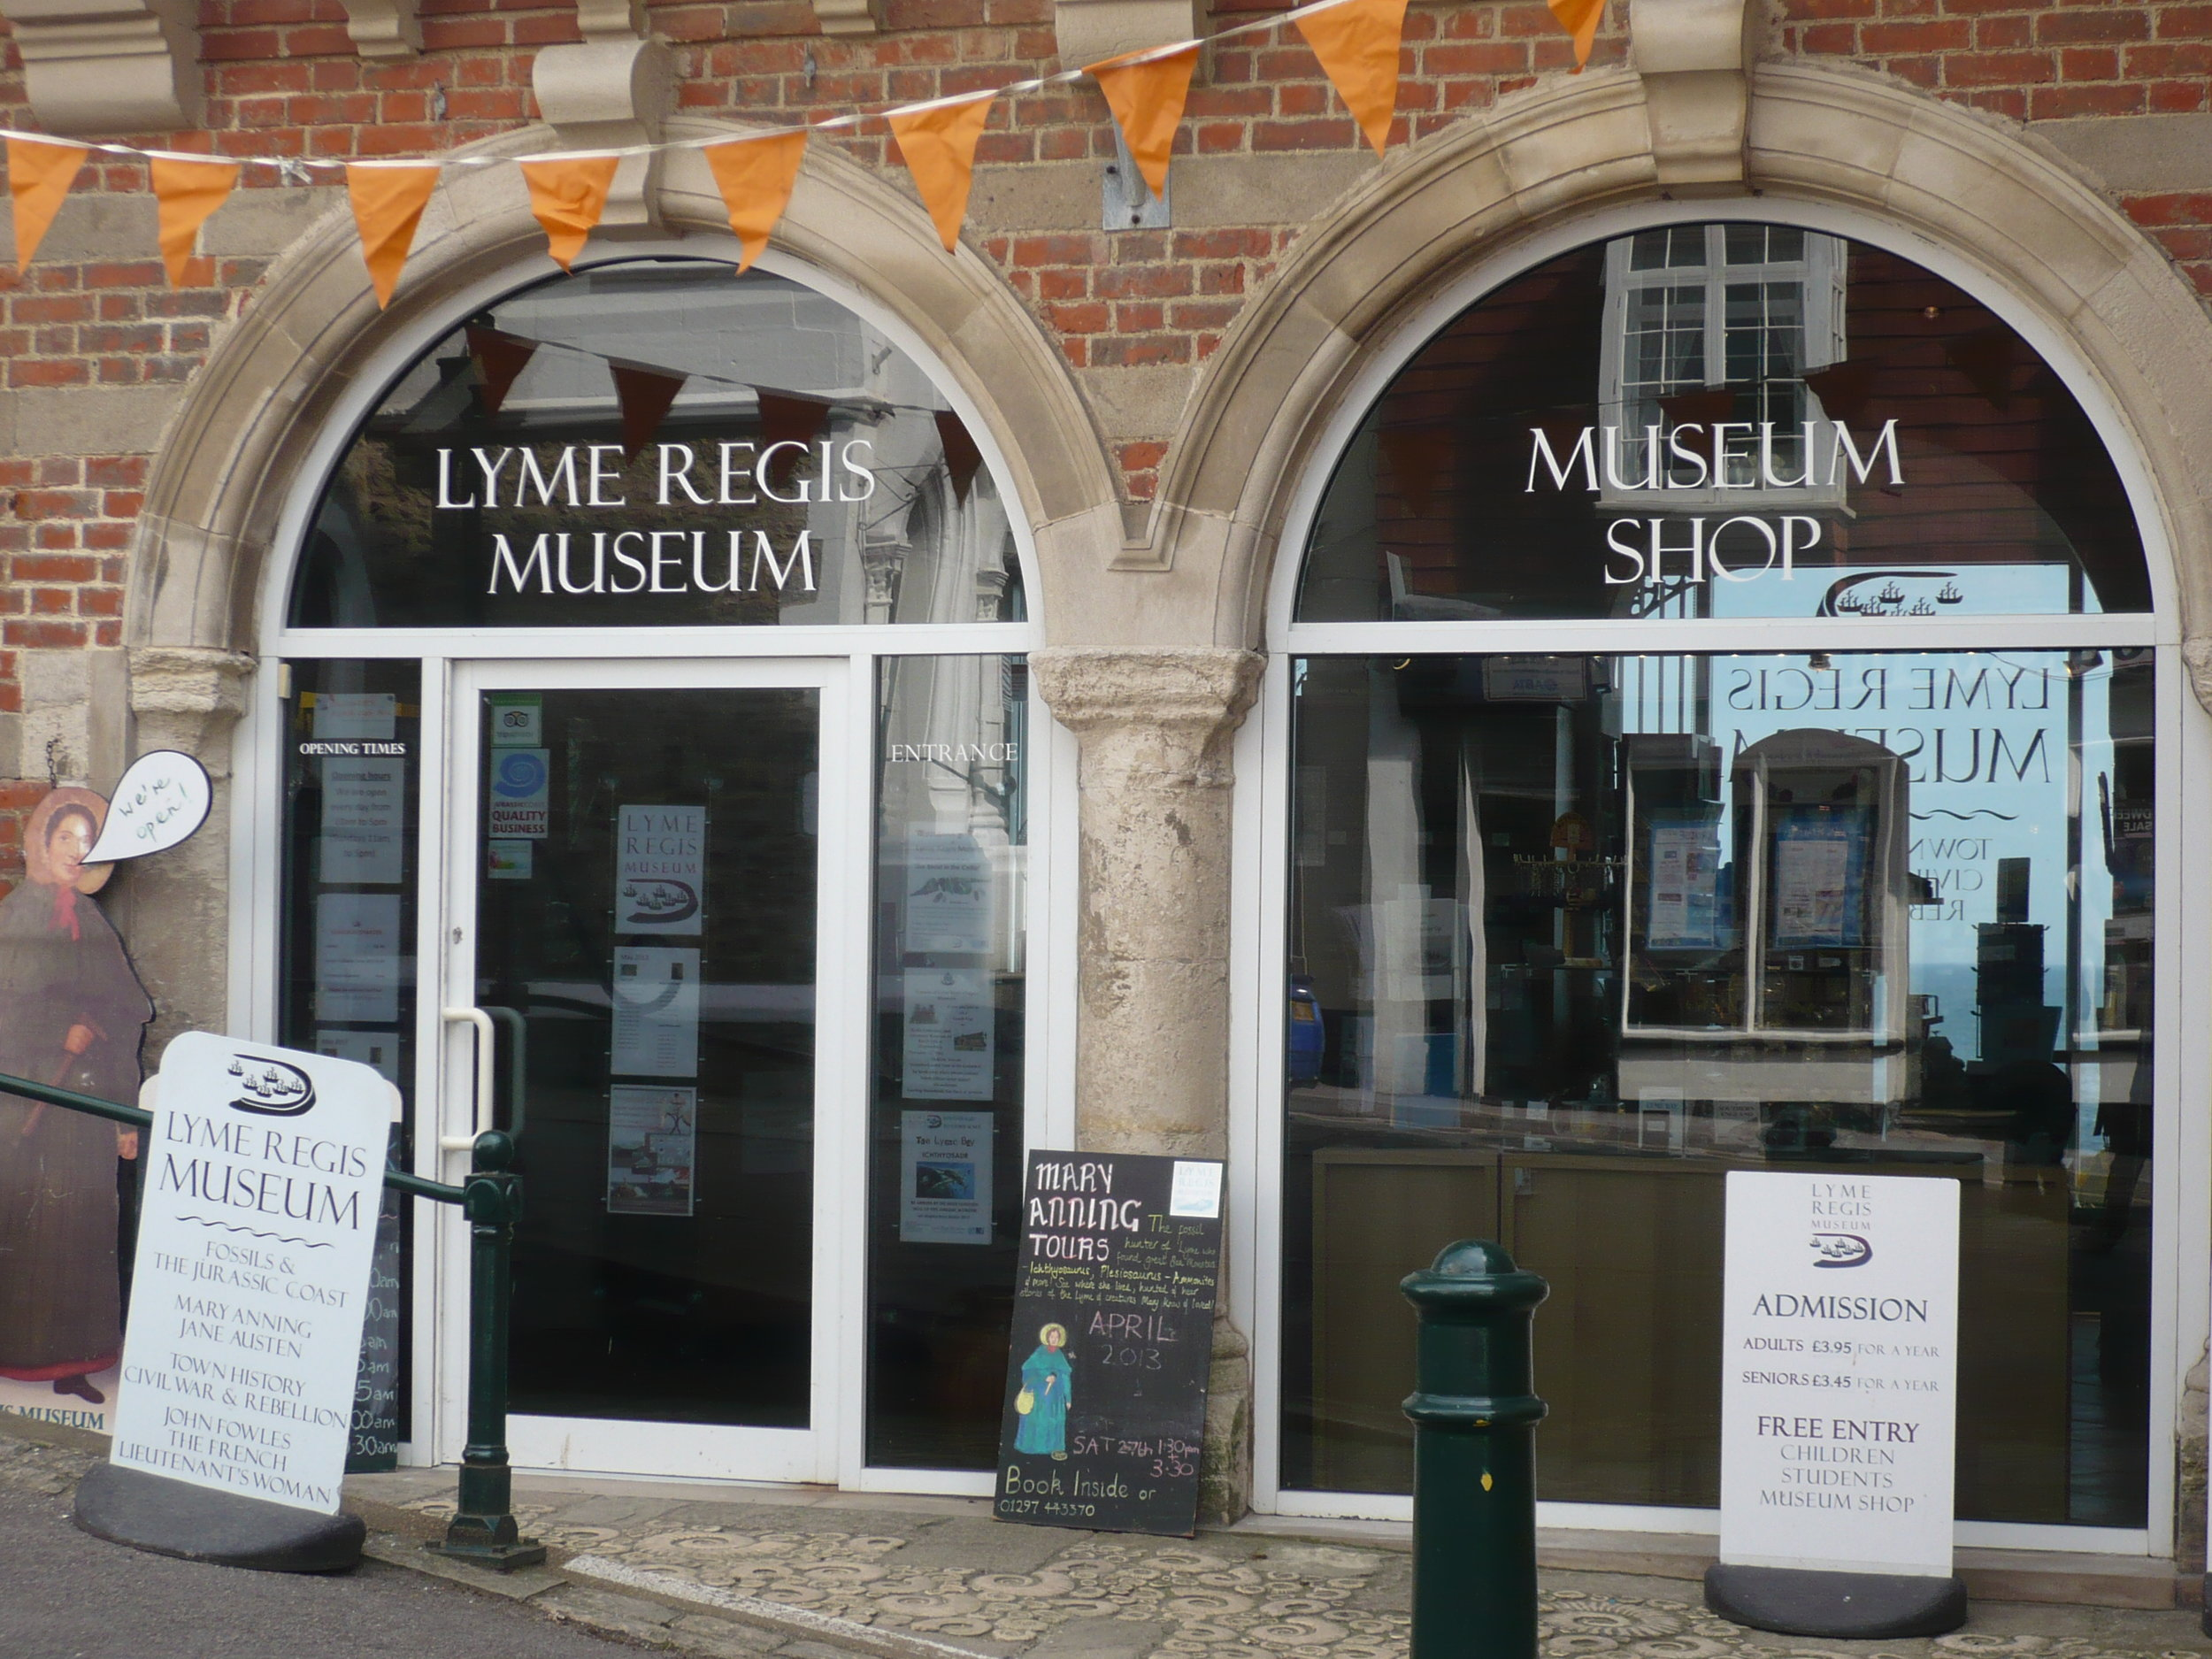 Lyme Regis Museum - Built on the site of the home of Lyme's renowned fossilist Mary Anning, the museum is one of the architectural gems of the town and is packed with fascinating displays.